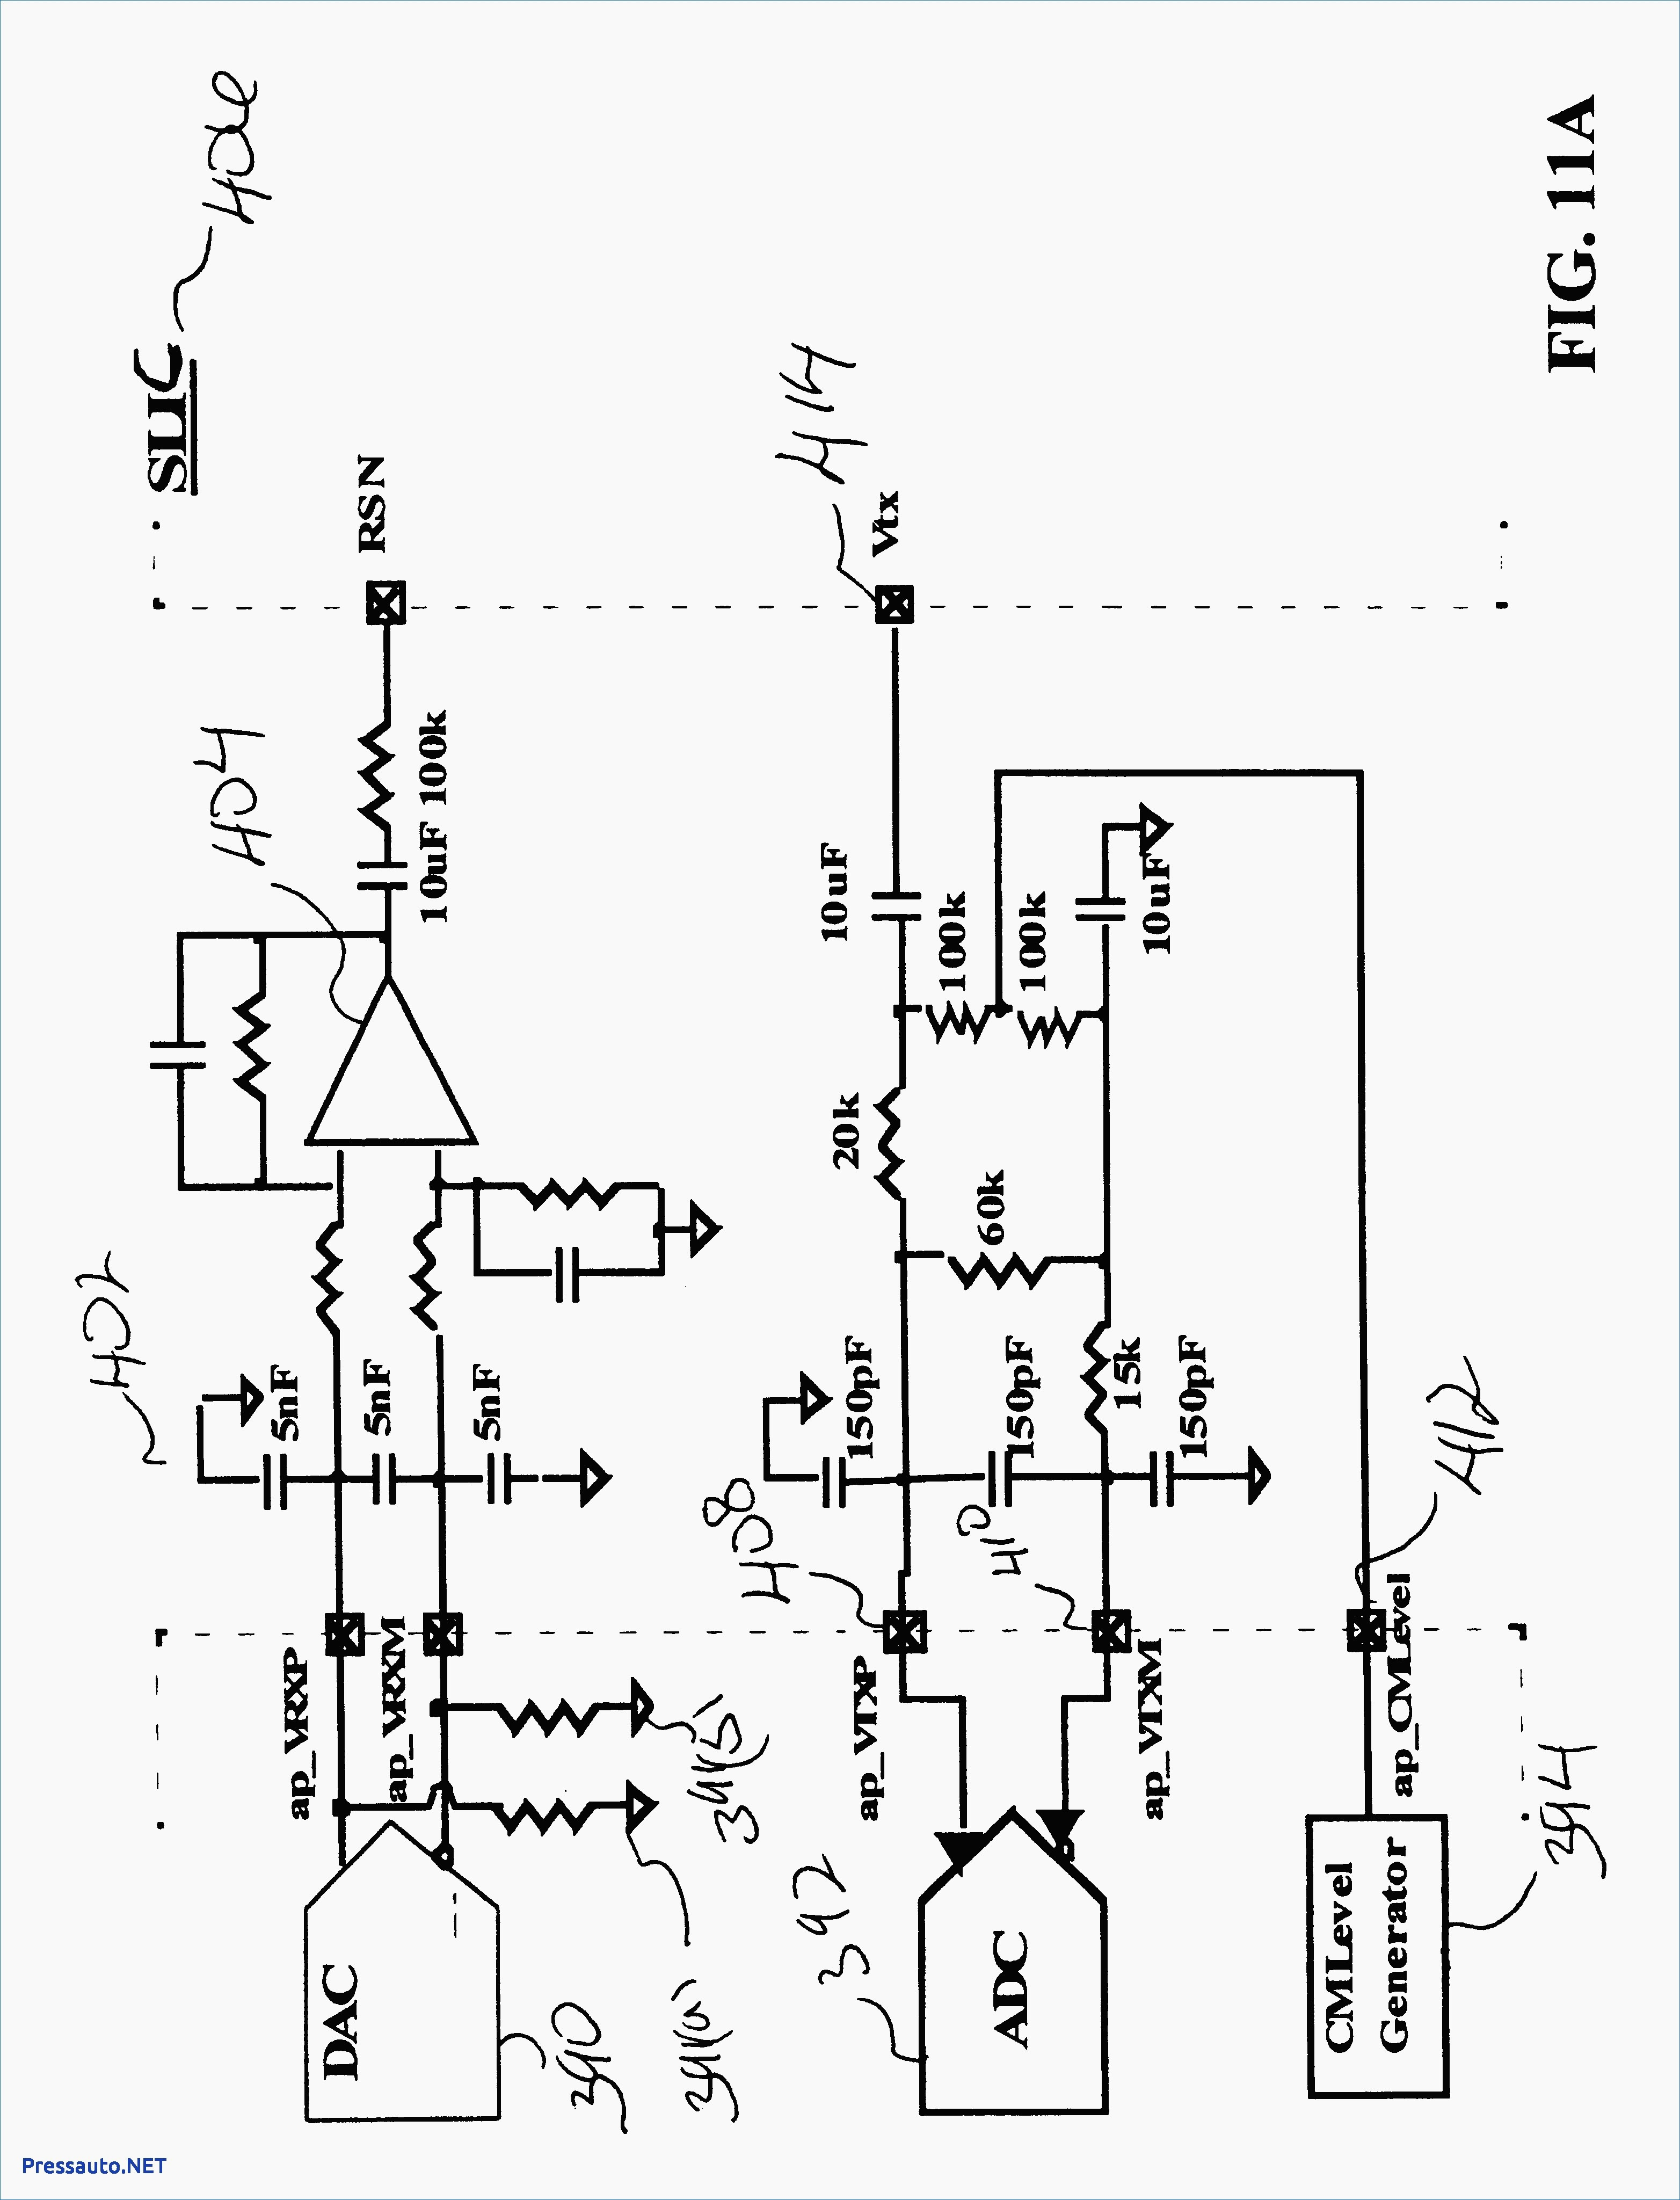 Acme Buck Boost Transformer Wiring Diagram Free Wiring